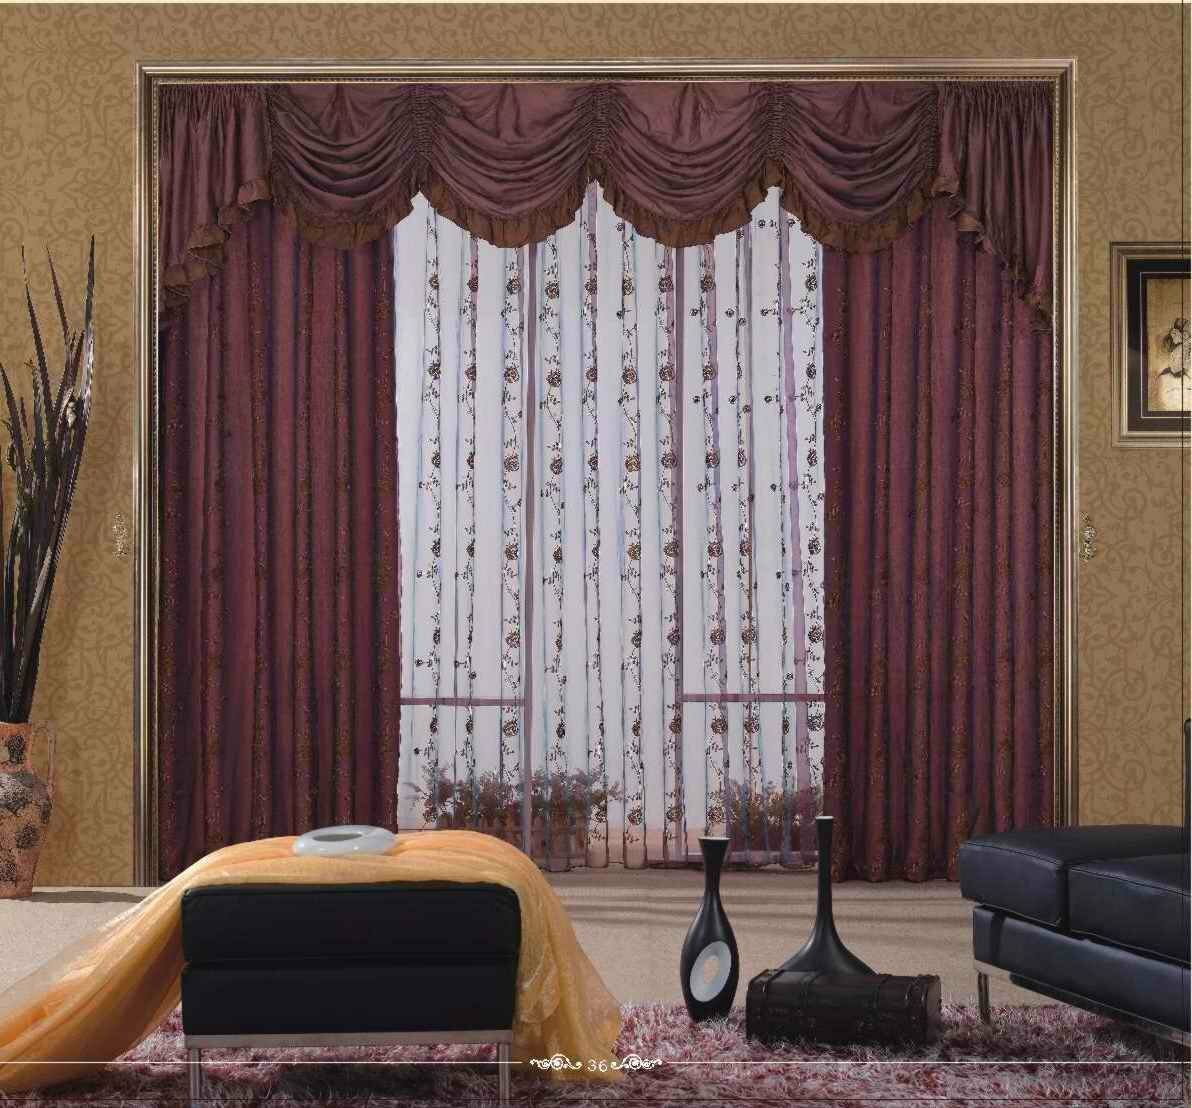 Living Room Valances curtain: where to buy valances | living room valances | window